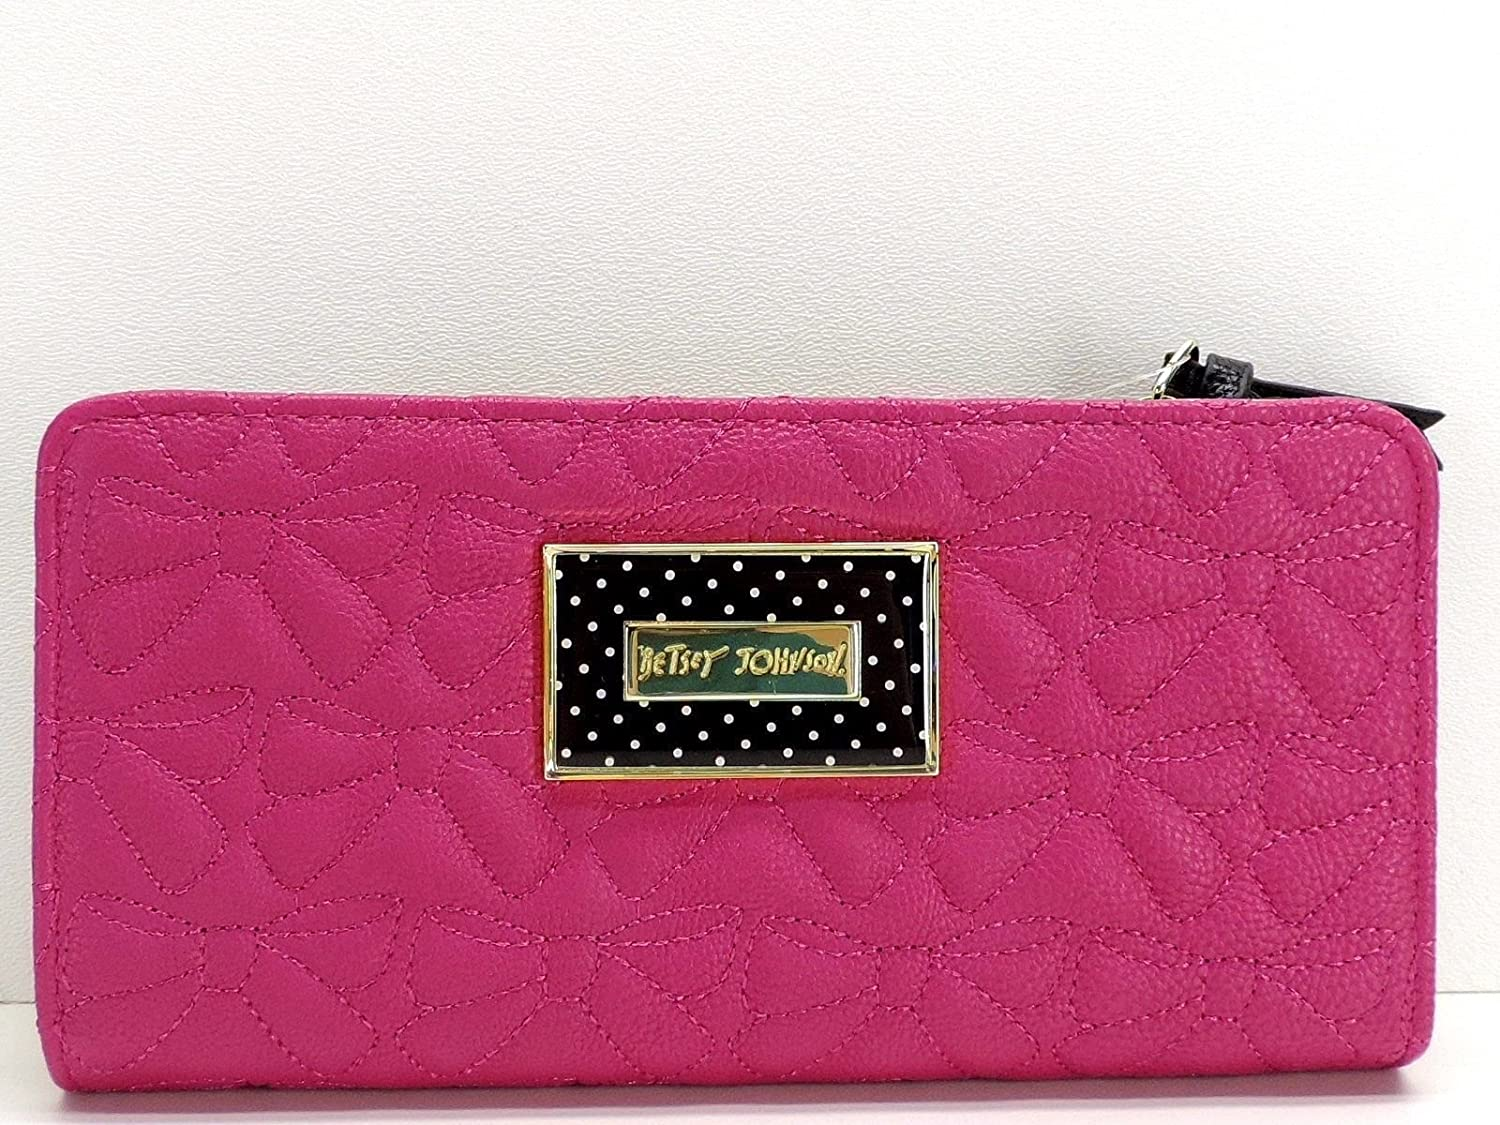 Betsey Johnson Fuschia Bifold Wallet Pink Stitched Bow Clutch